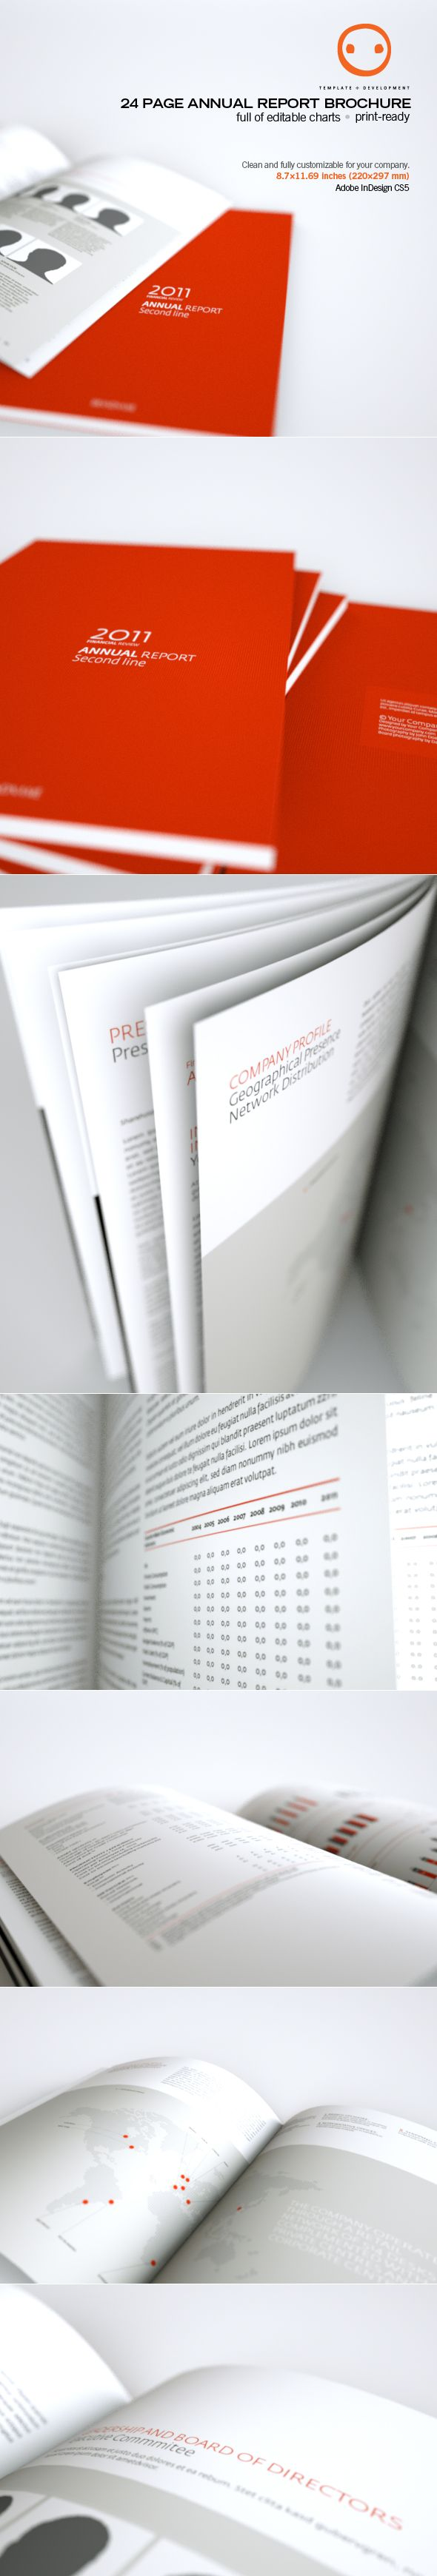 198 best annual report layouts images on pinterest annual report